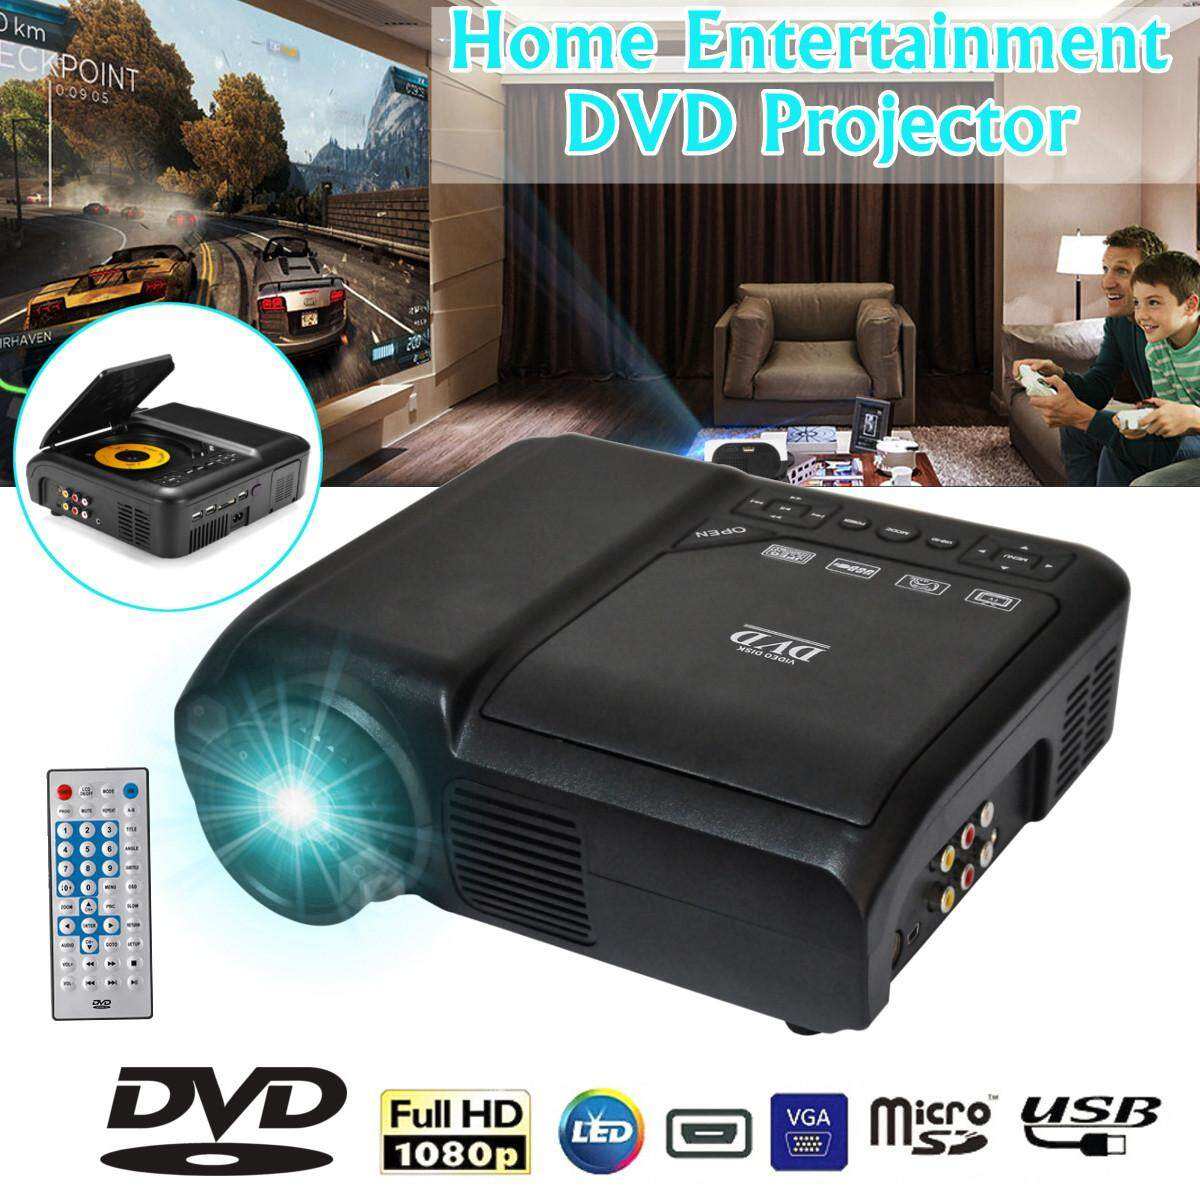 1080P HD LED Projector Home Cinema Theater Multimedia PC USB TV DVD Game Player